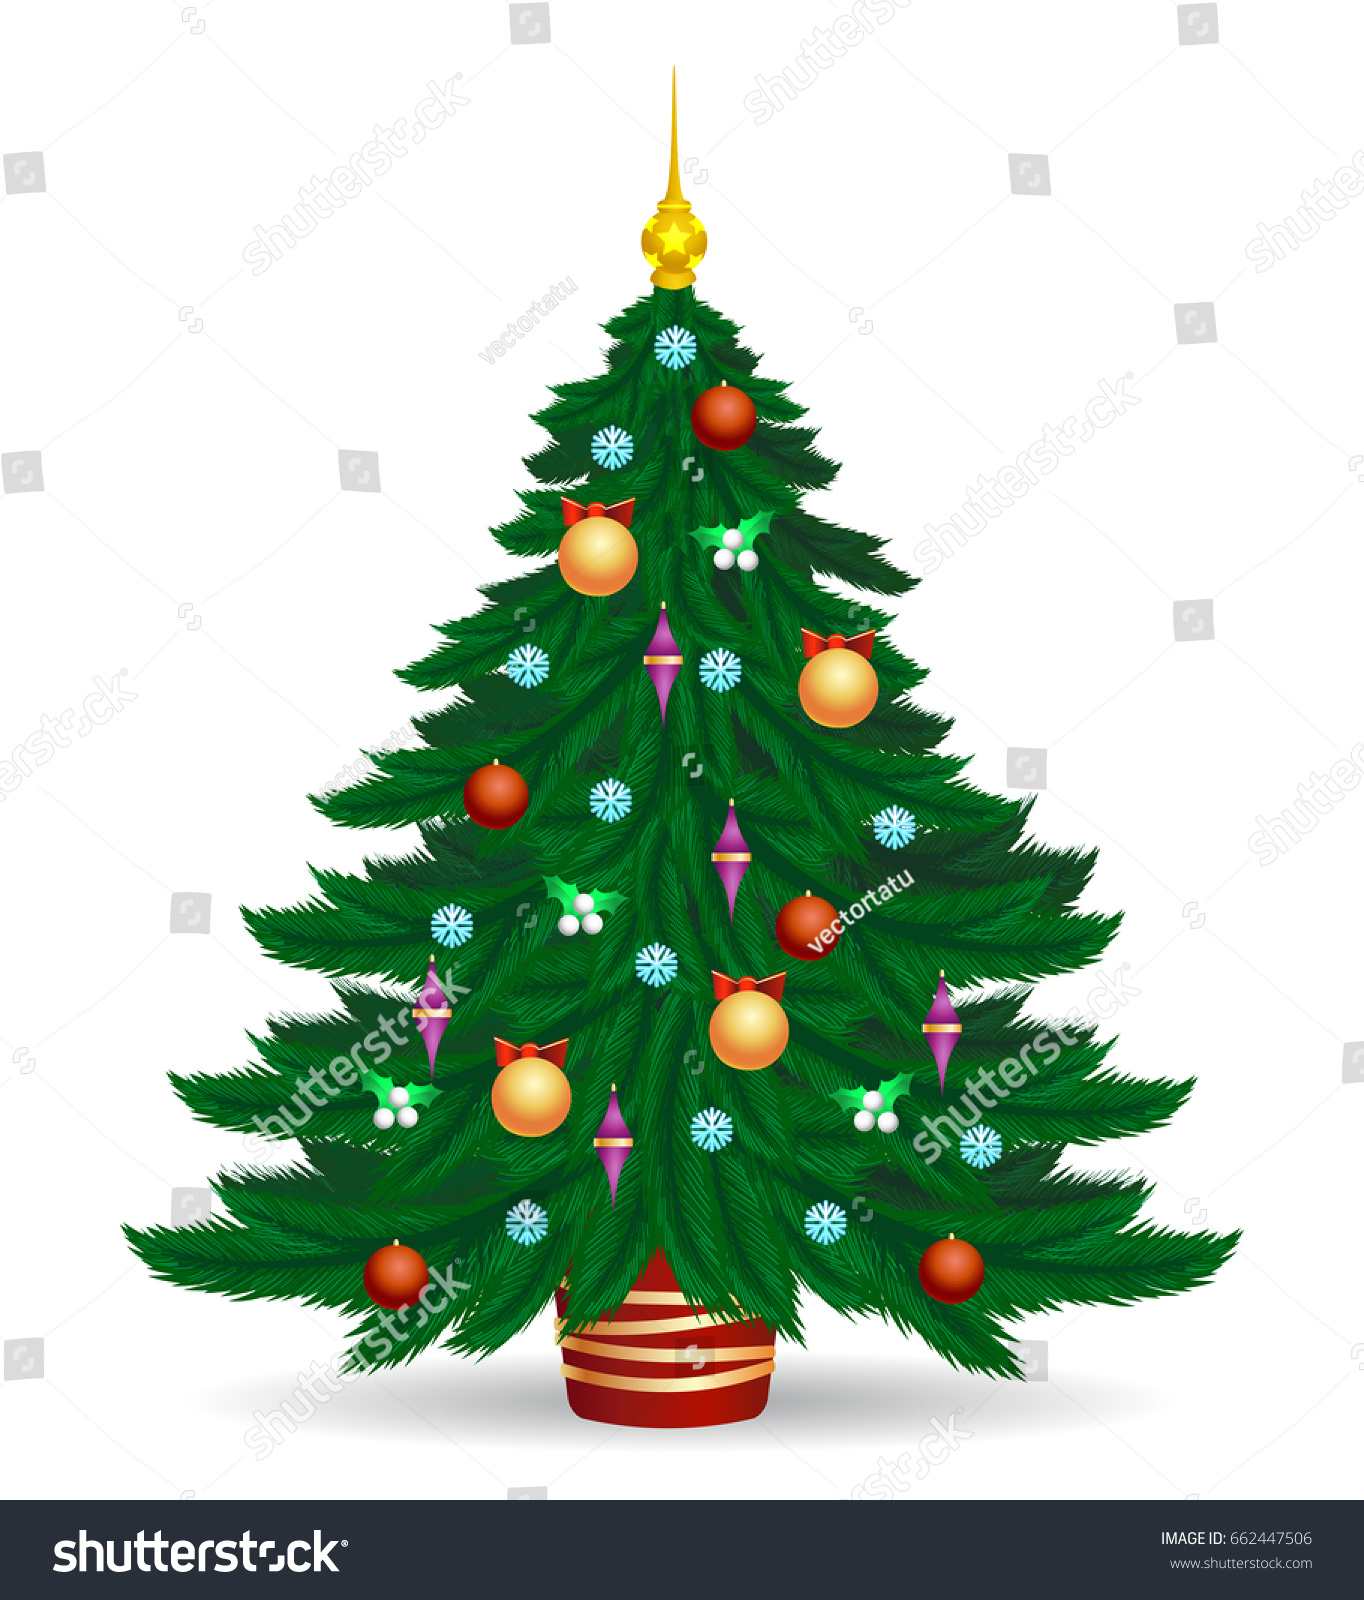 christmas tree vector illustration decorated colorful traditional xmas trees symbol with bright lights and balls